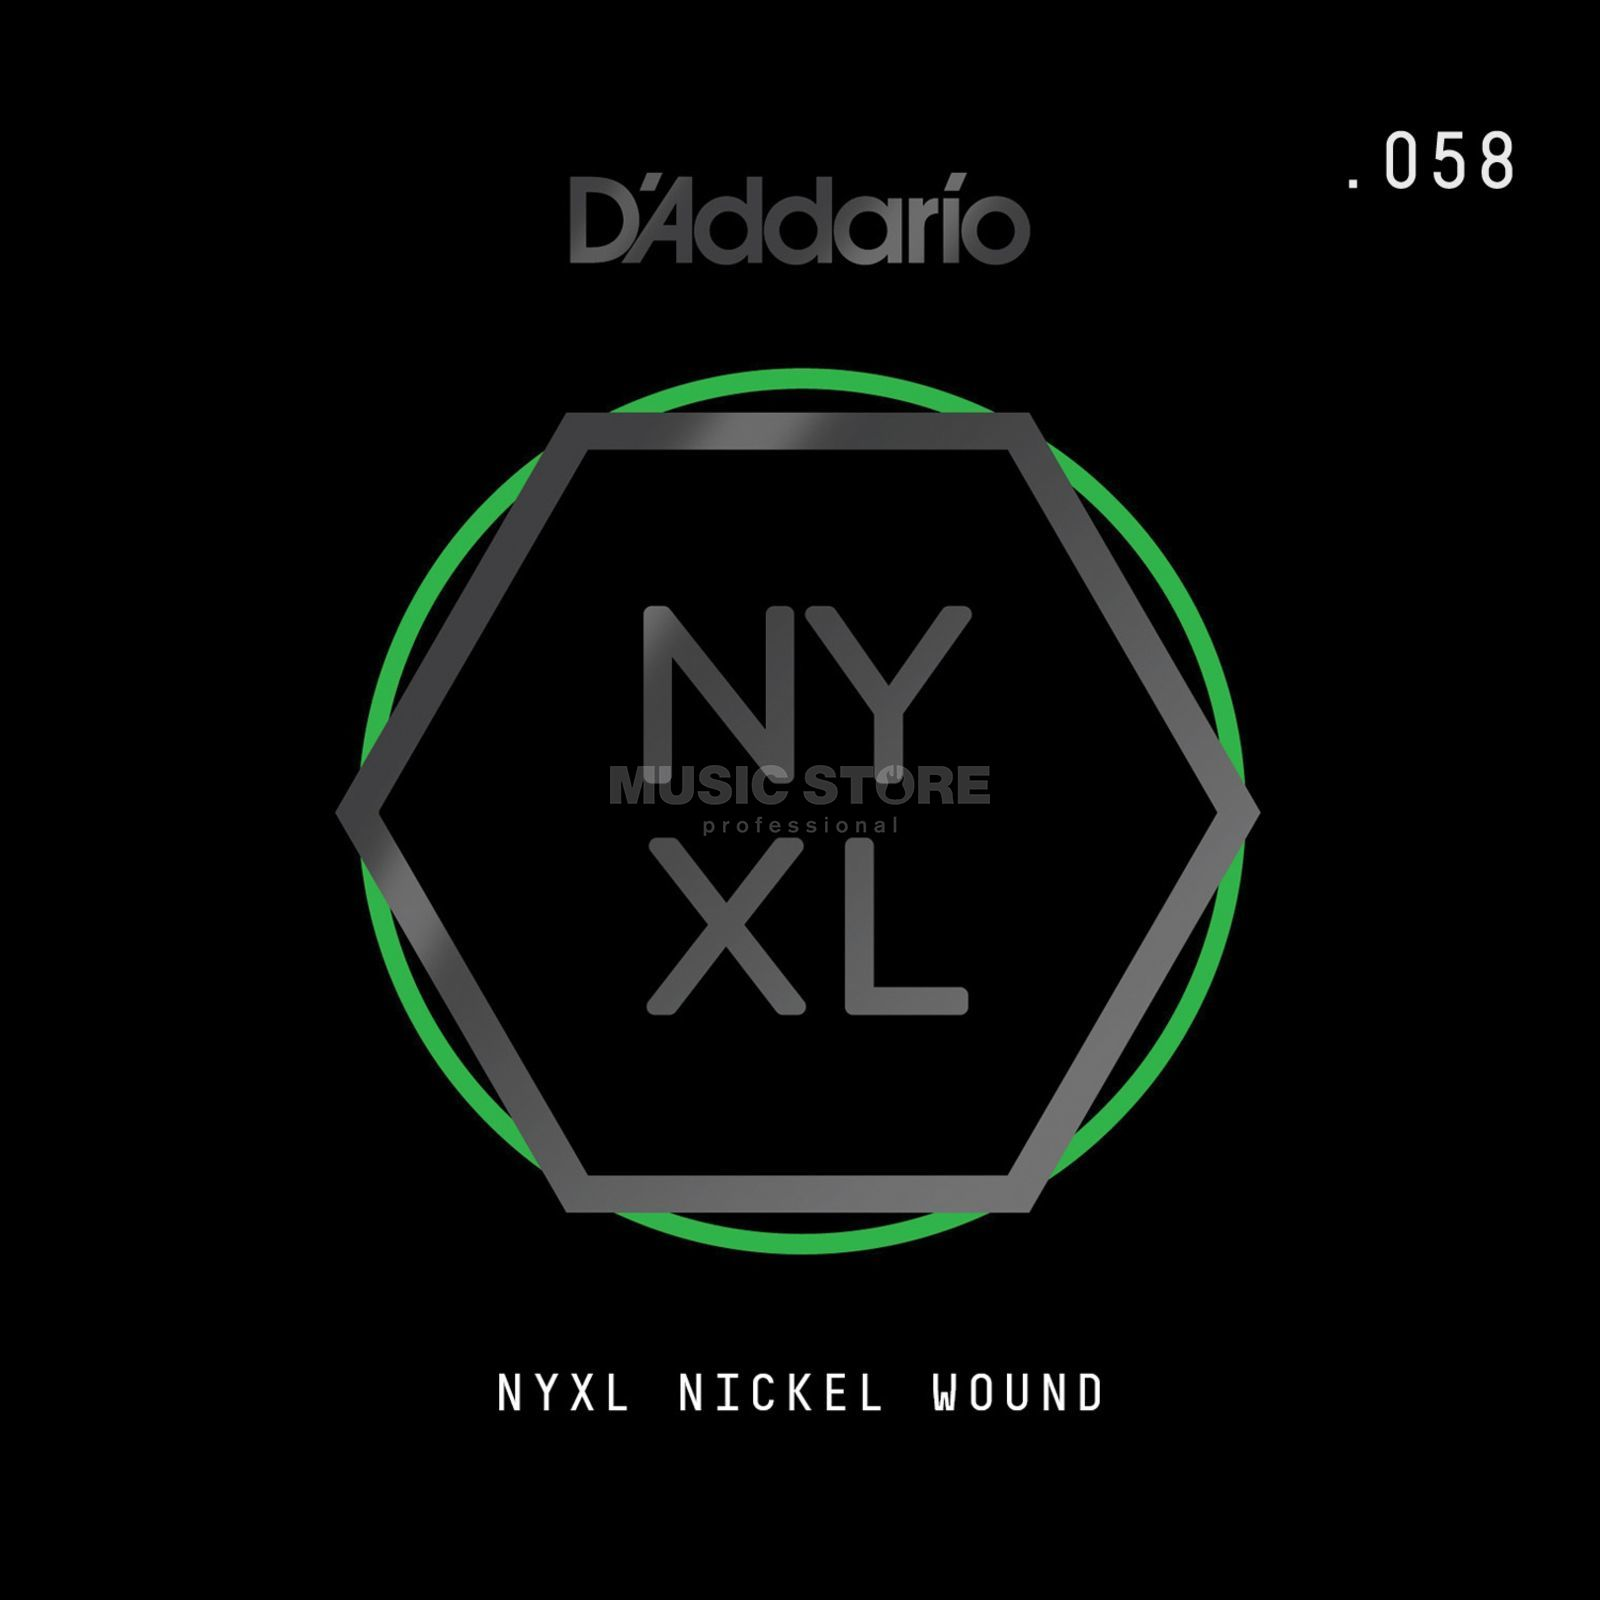 D'Addario NYNW058 Single String Nickel Wound Imagem do produto